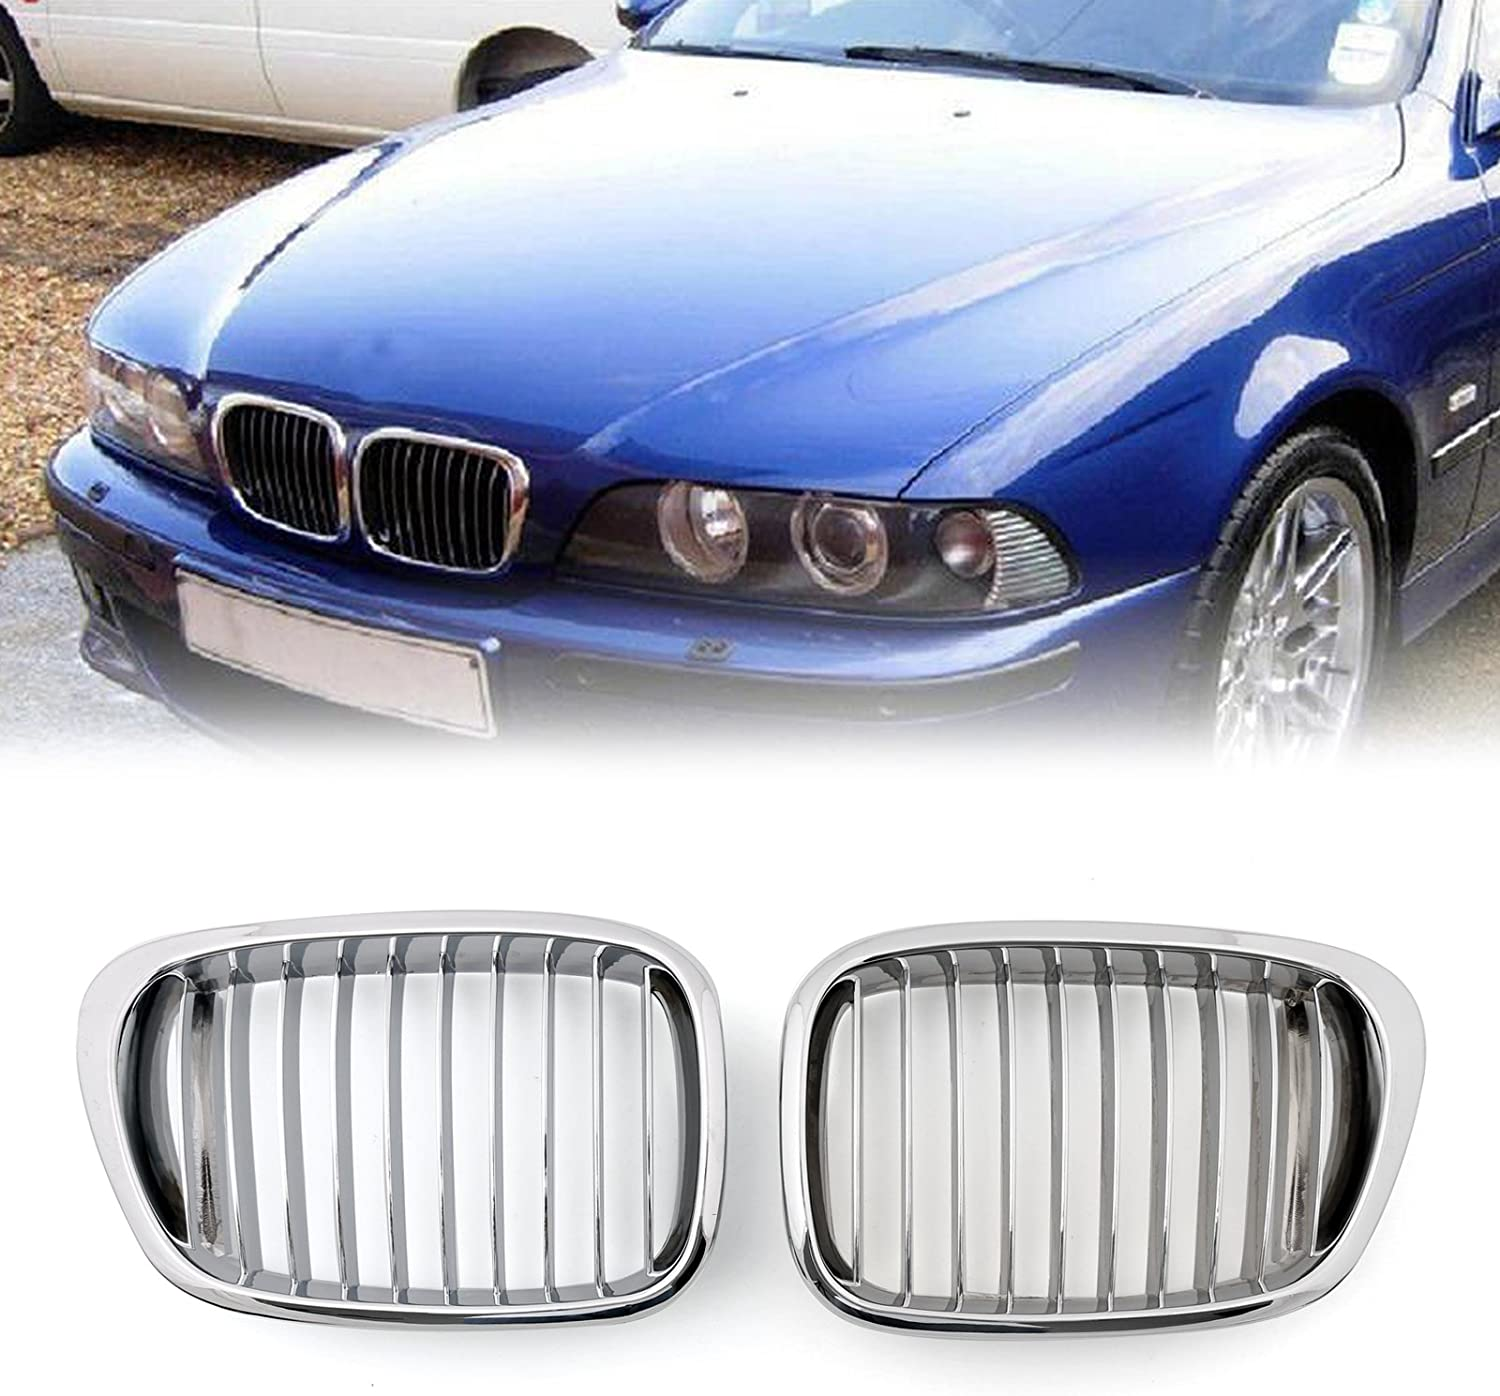 Artudatech Car Front Grill 1 Pair Mesh Double Grille Front Kidney Bumper Grilles Front Fence Grill for B M W E39 5 Series 1995-2003